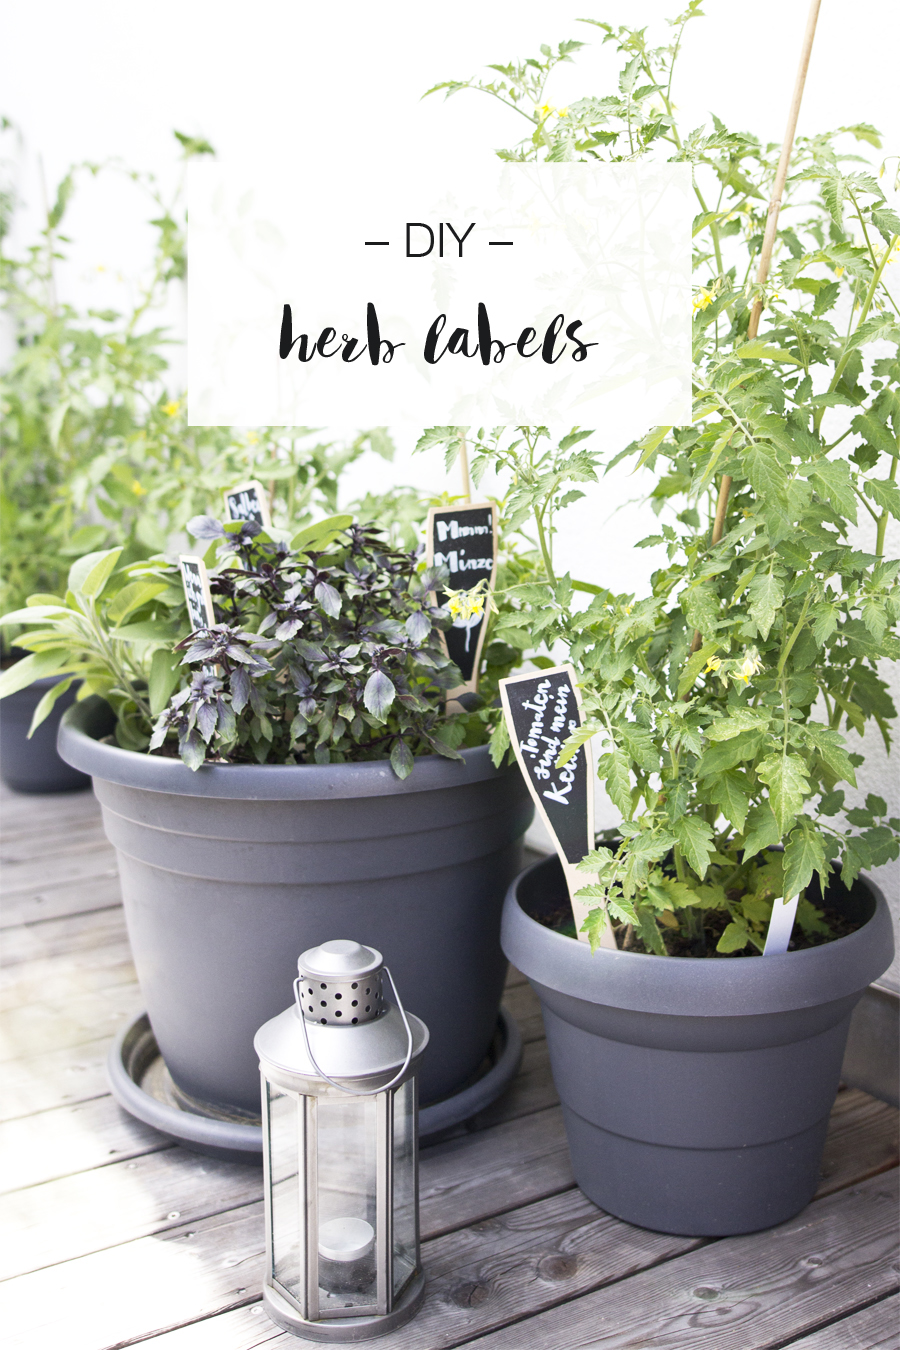 herb-labels-for-your-balcony-garden